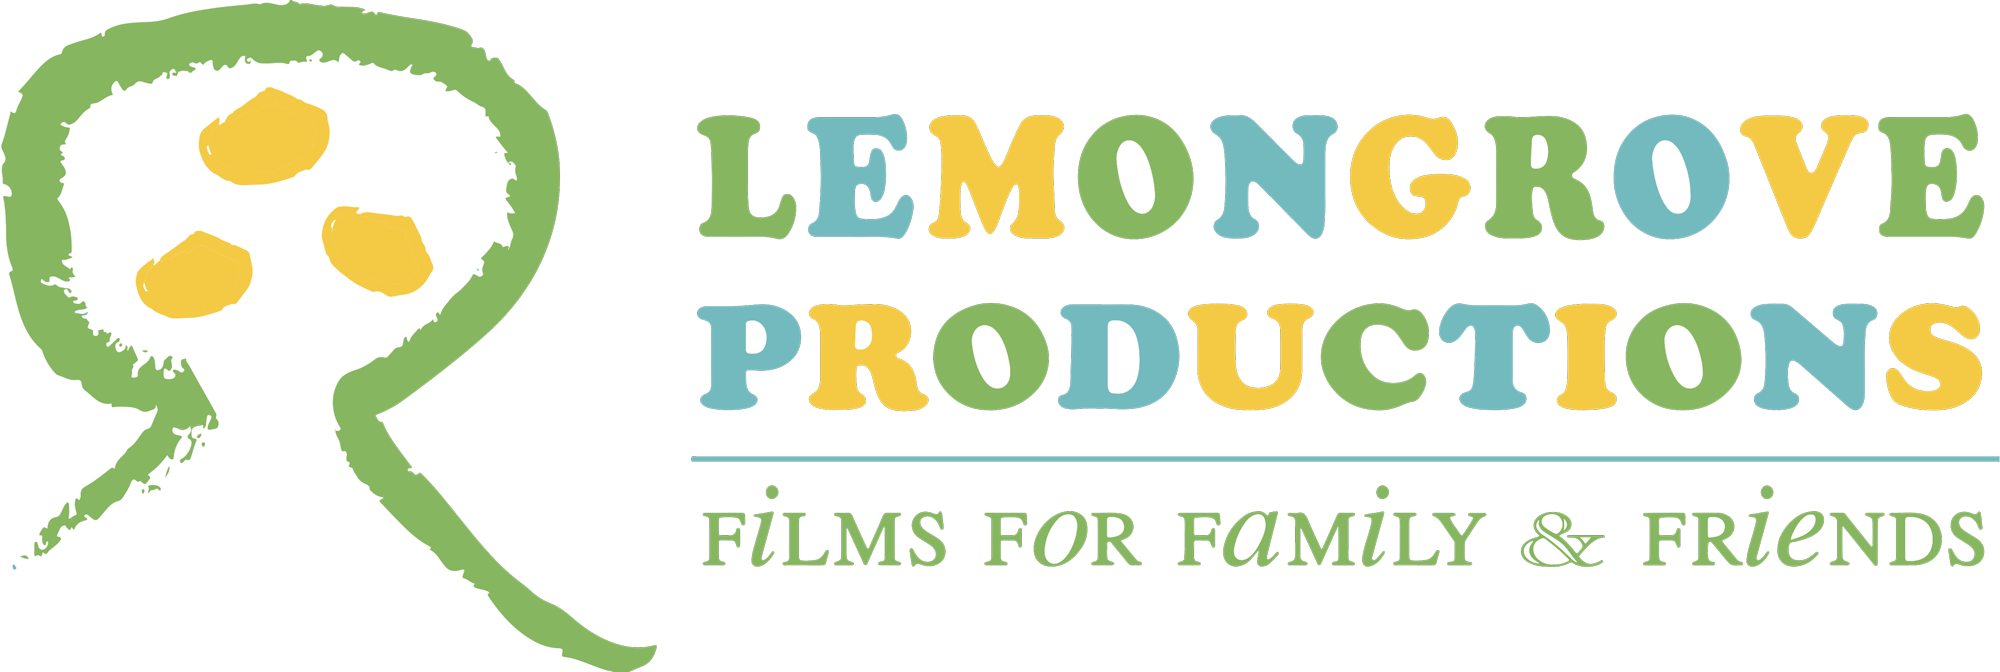 Lemongrove Productions